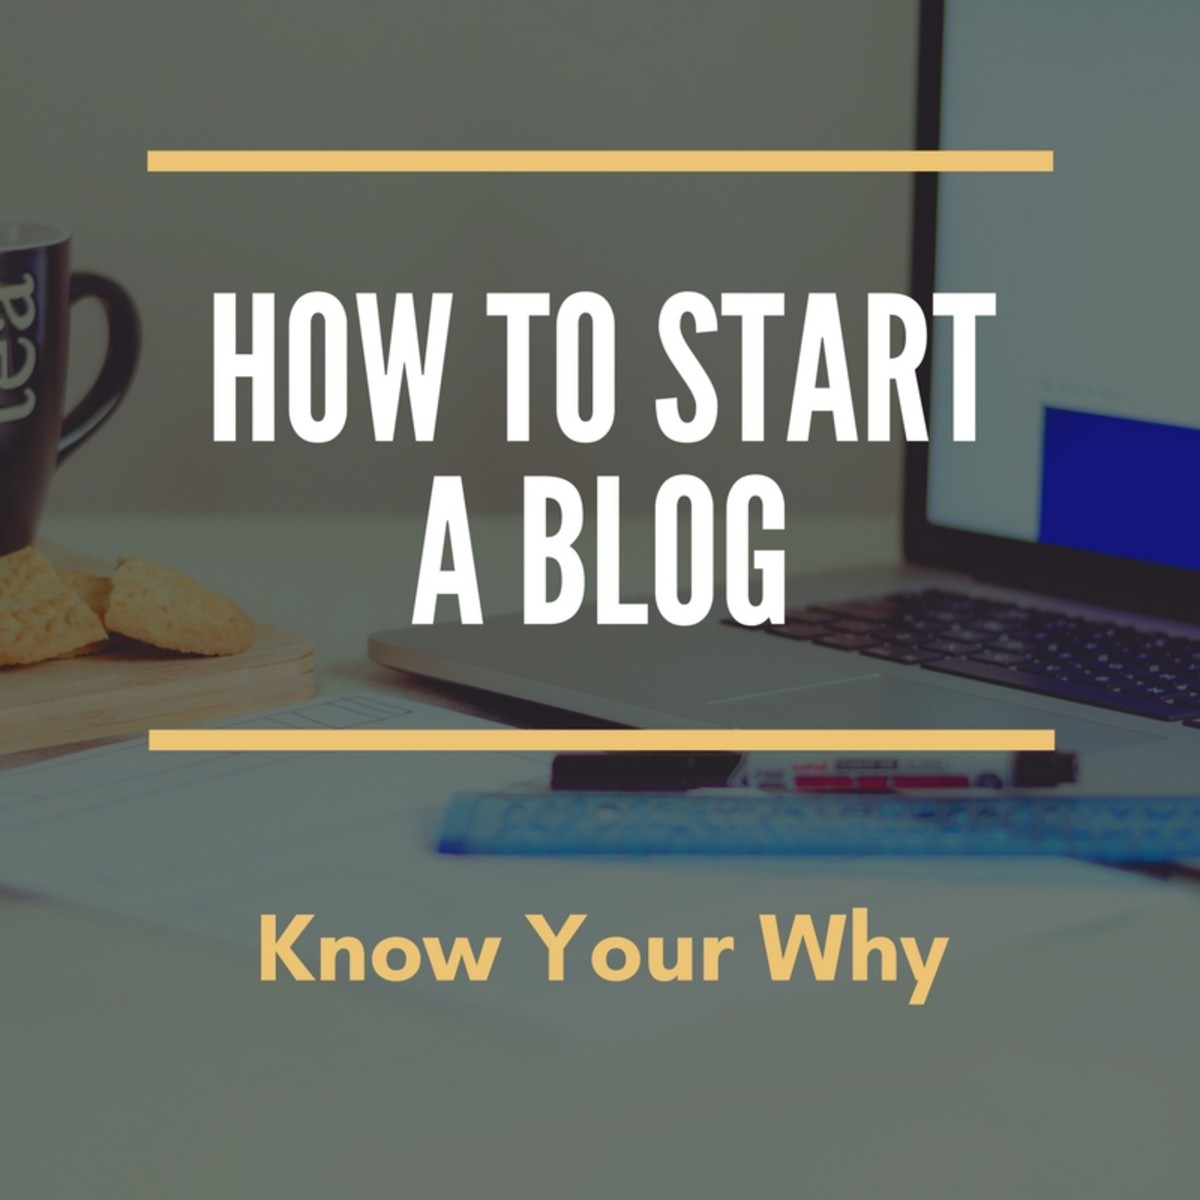 How to Start a Blog: Know Your Why